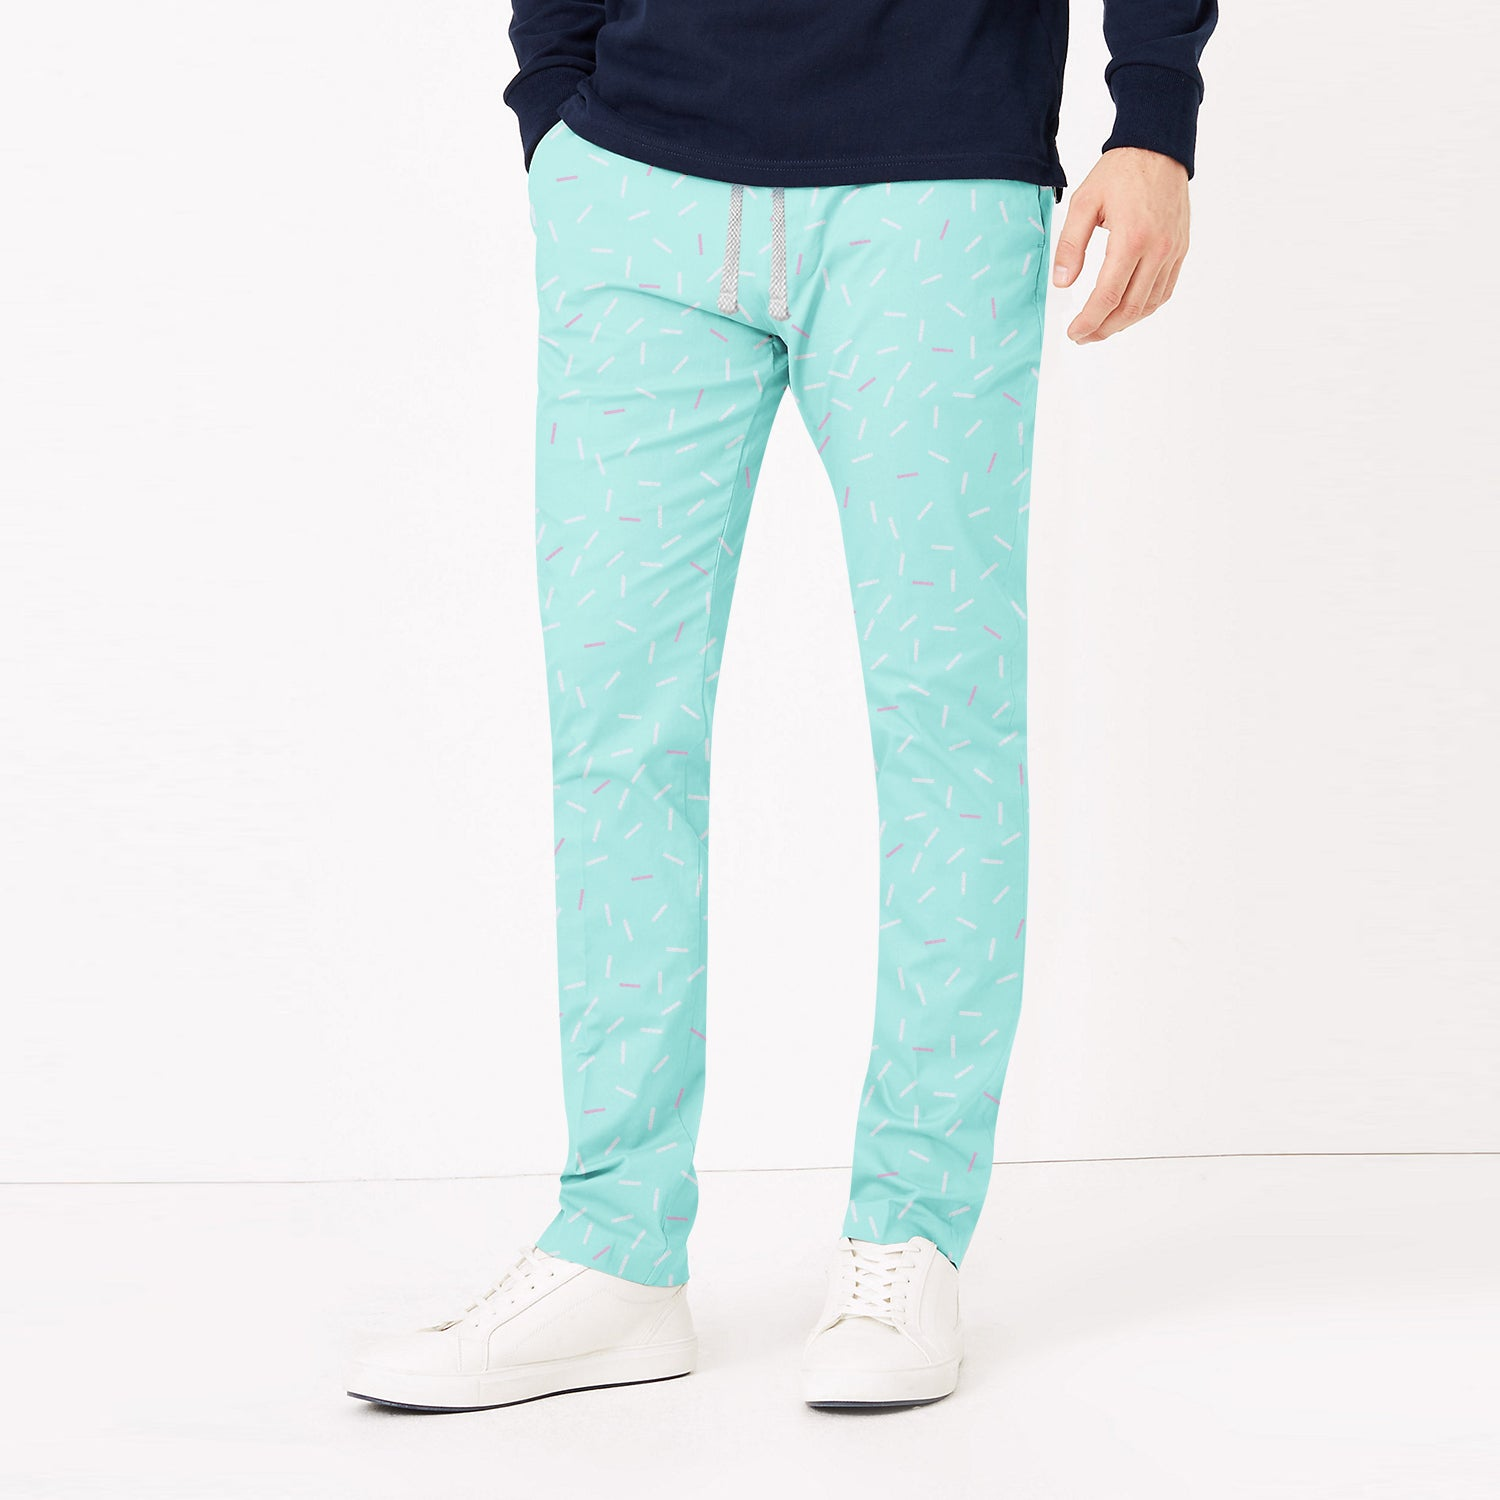 Zara Man Slim Fit Flannel Trouser For Men-Cyan Green with Allover Print-BE9808